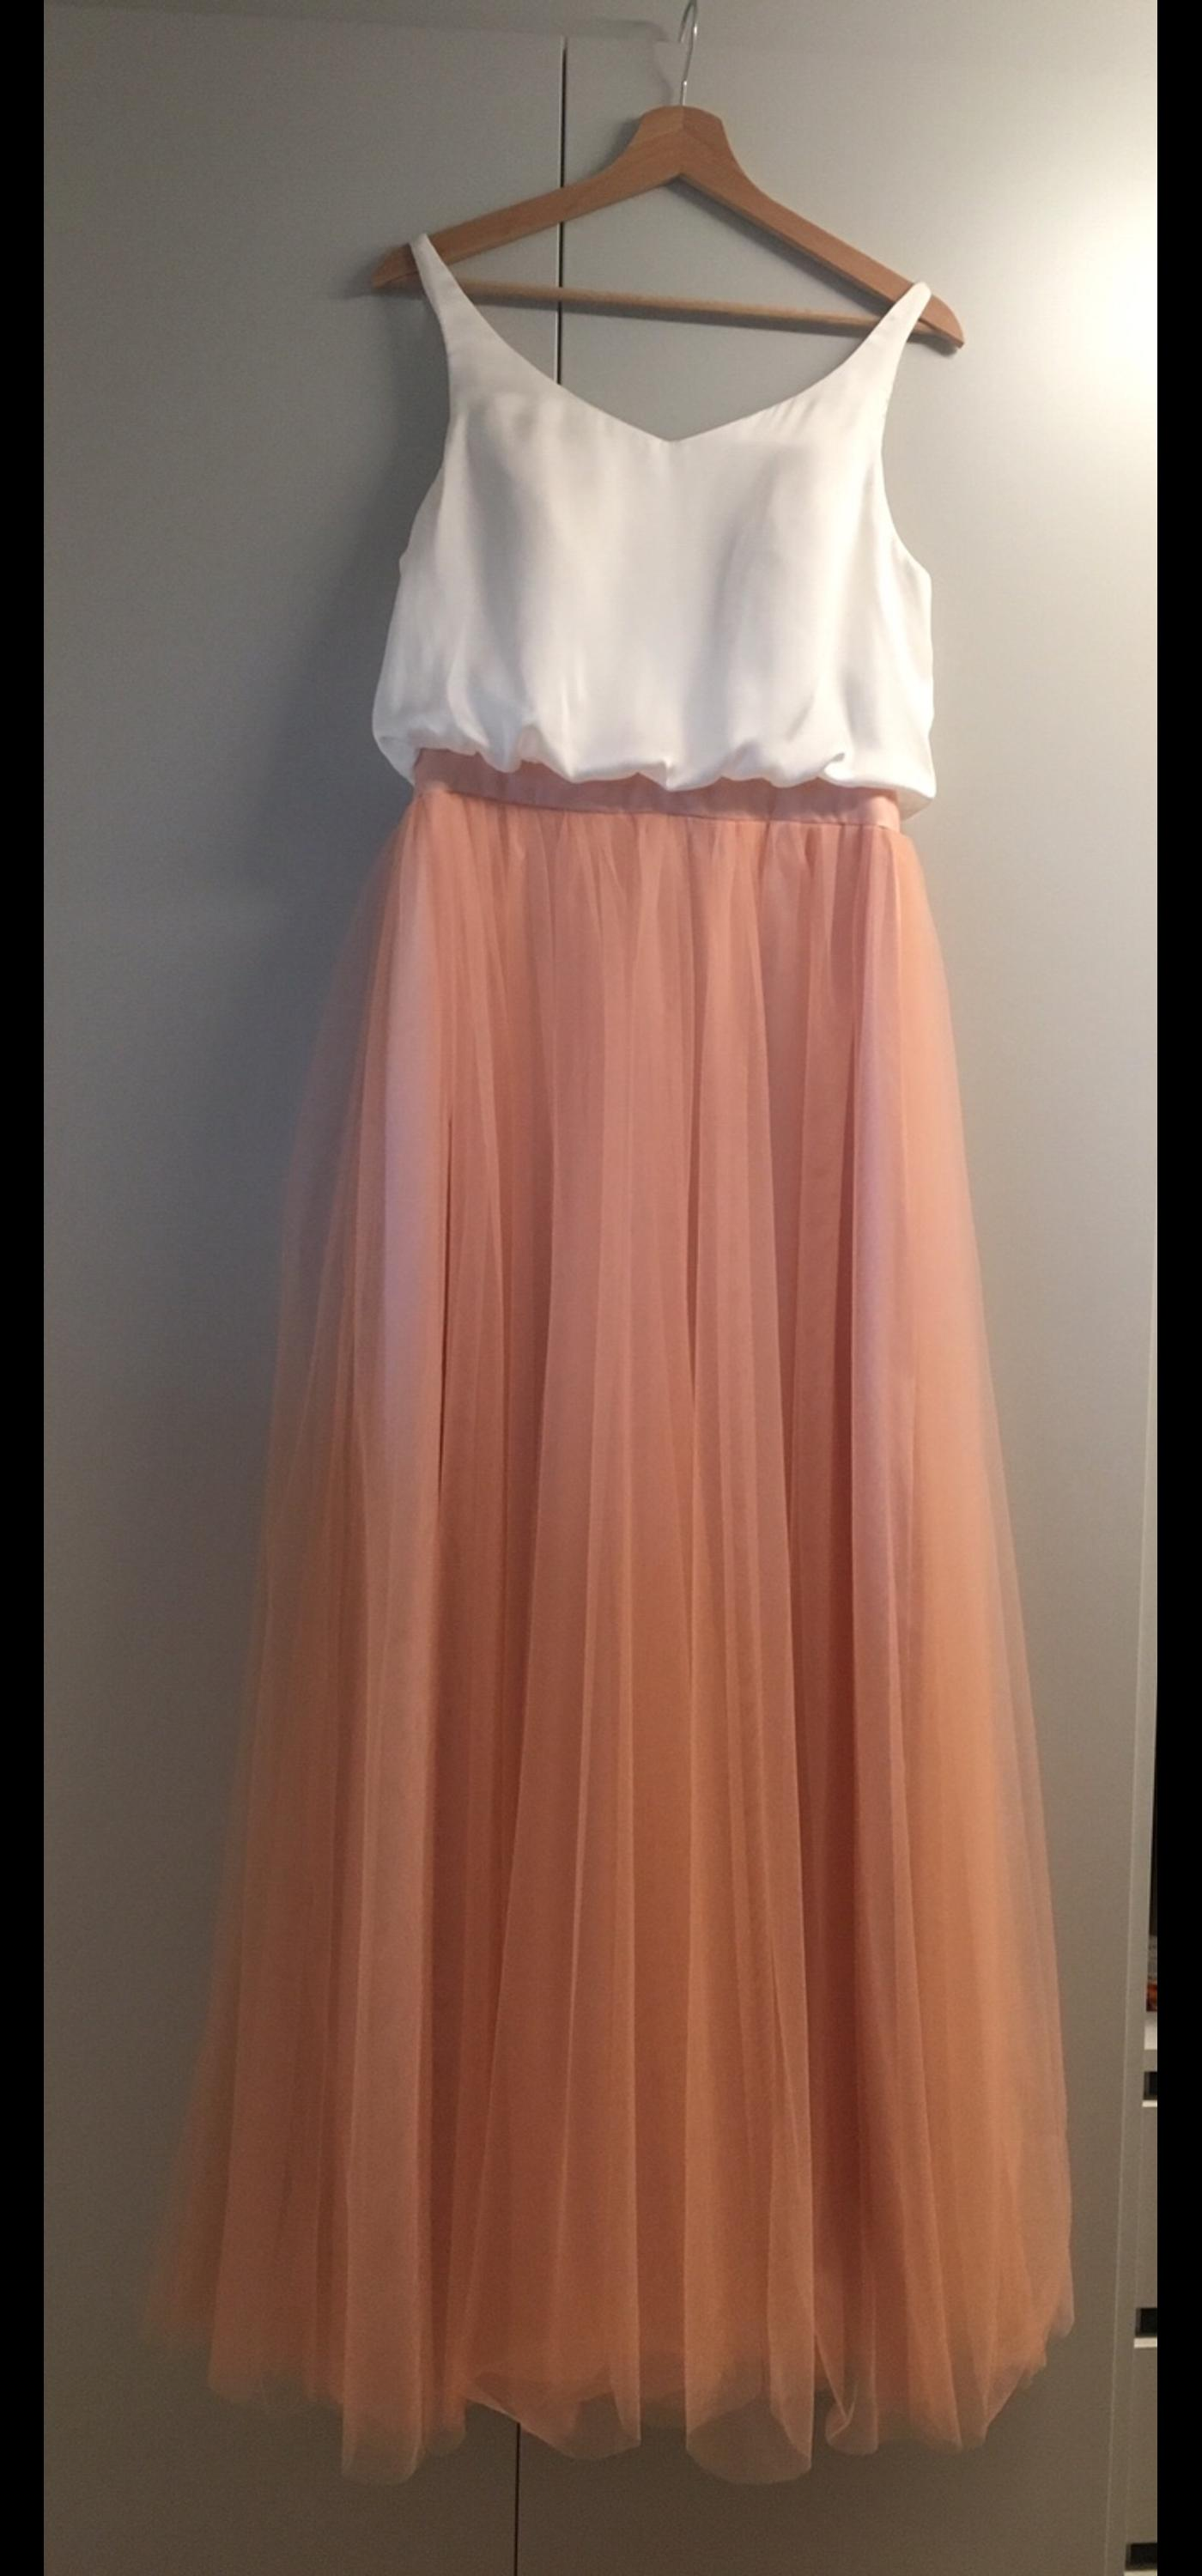 Apricot Farbe Brautjungfern-/abendkleid In 8042 Raaba-grambach For €85.00 For Sale | Shpock